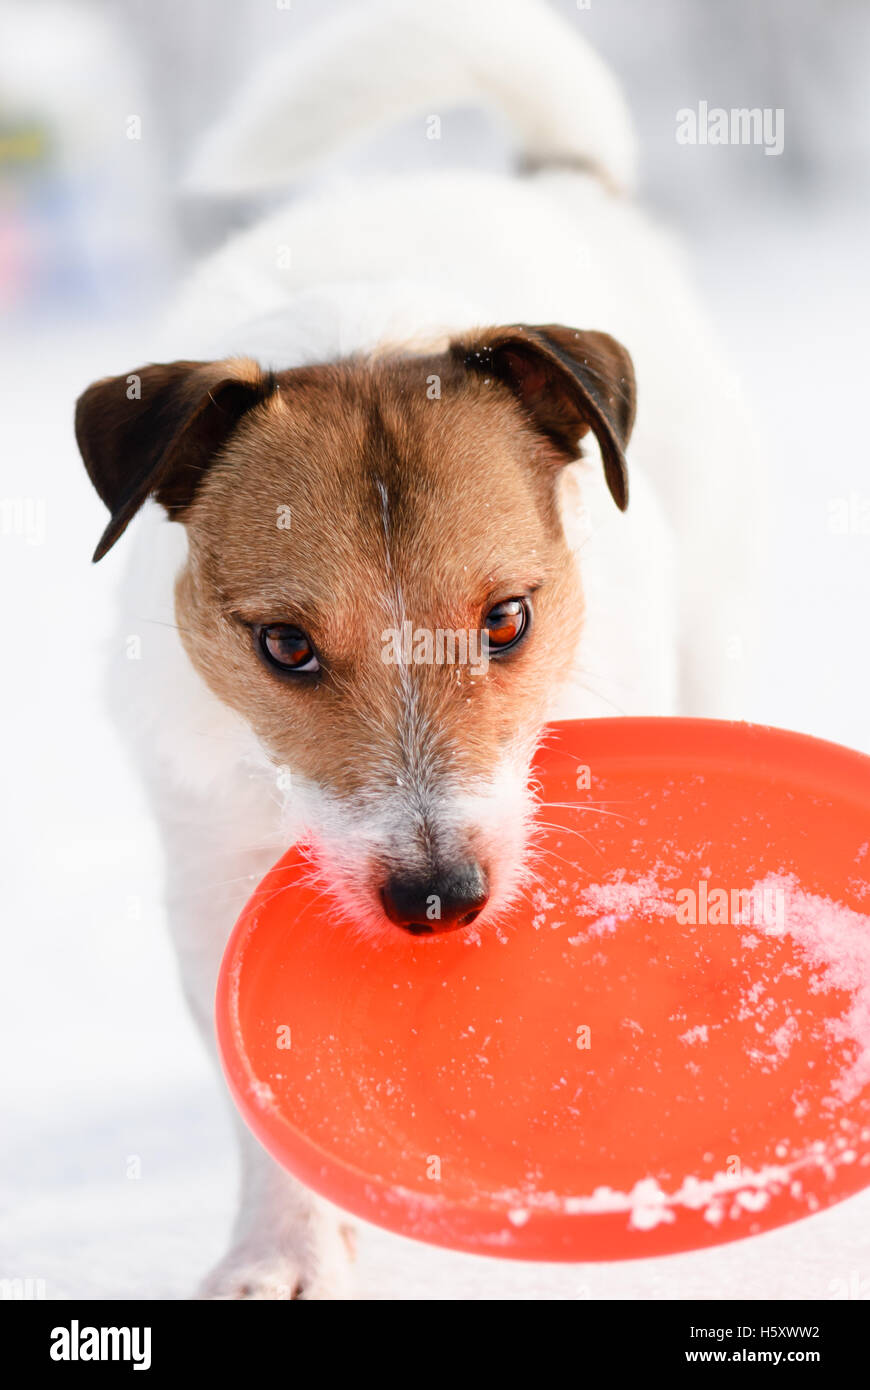 Dog with red toy inviting to play a fun game - Stock Image